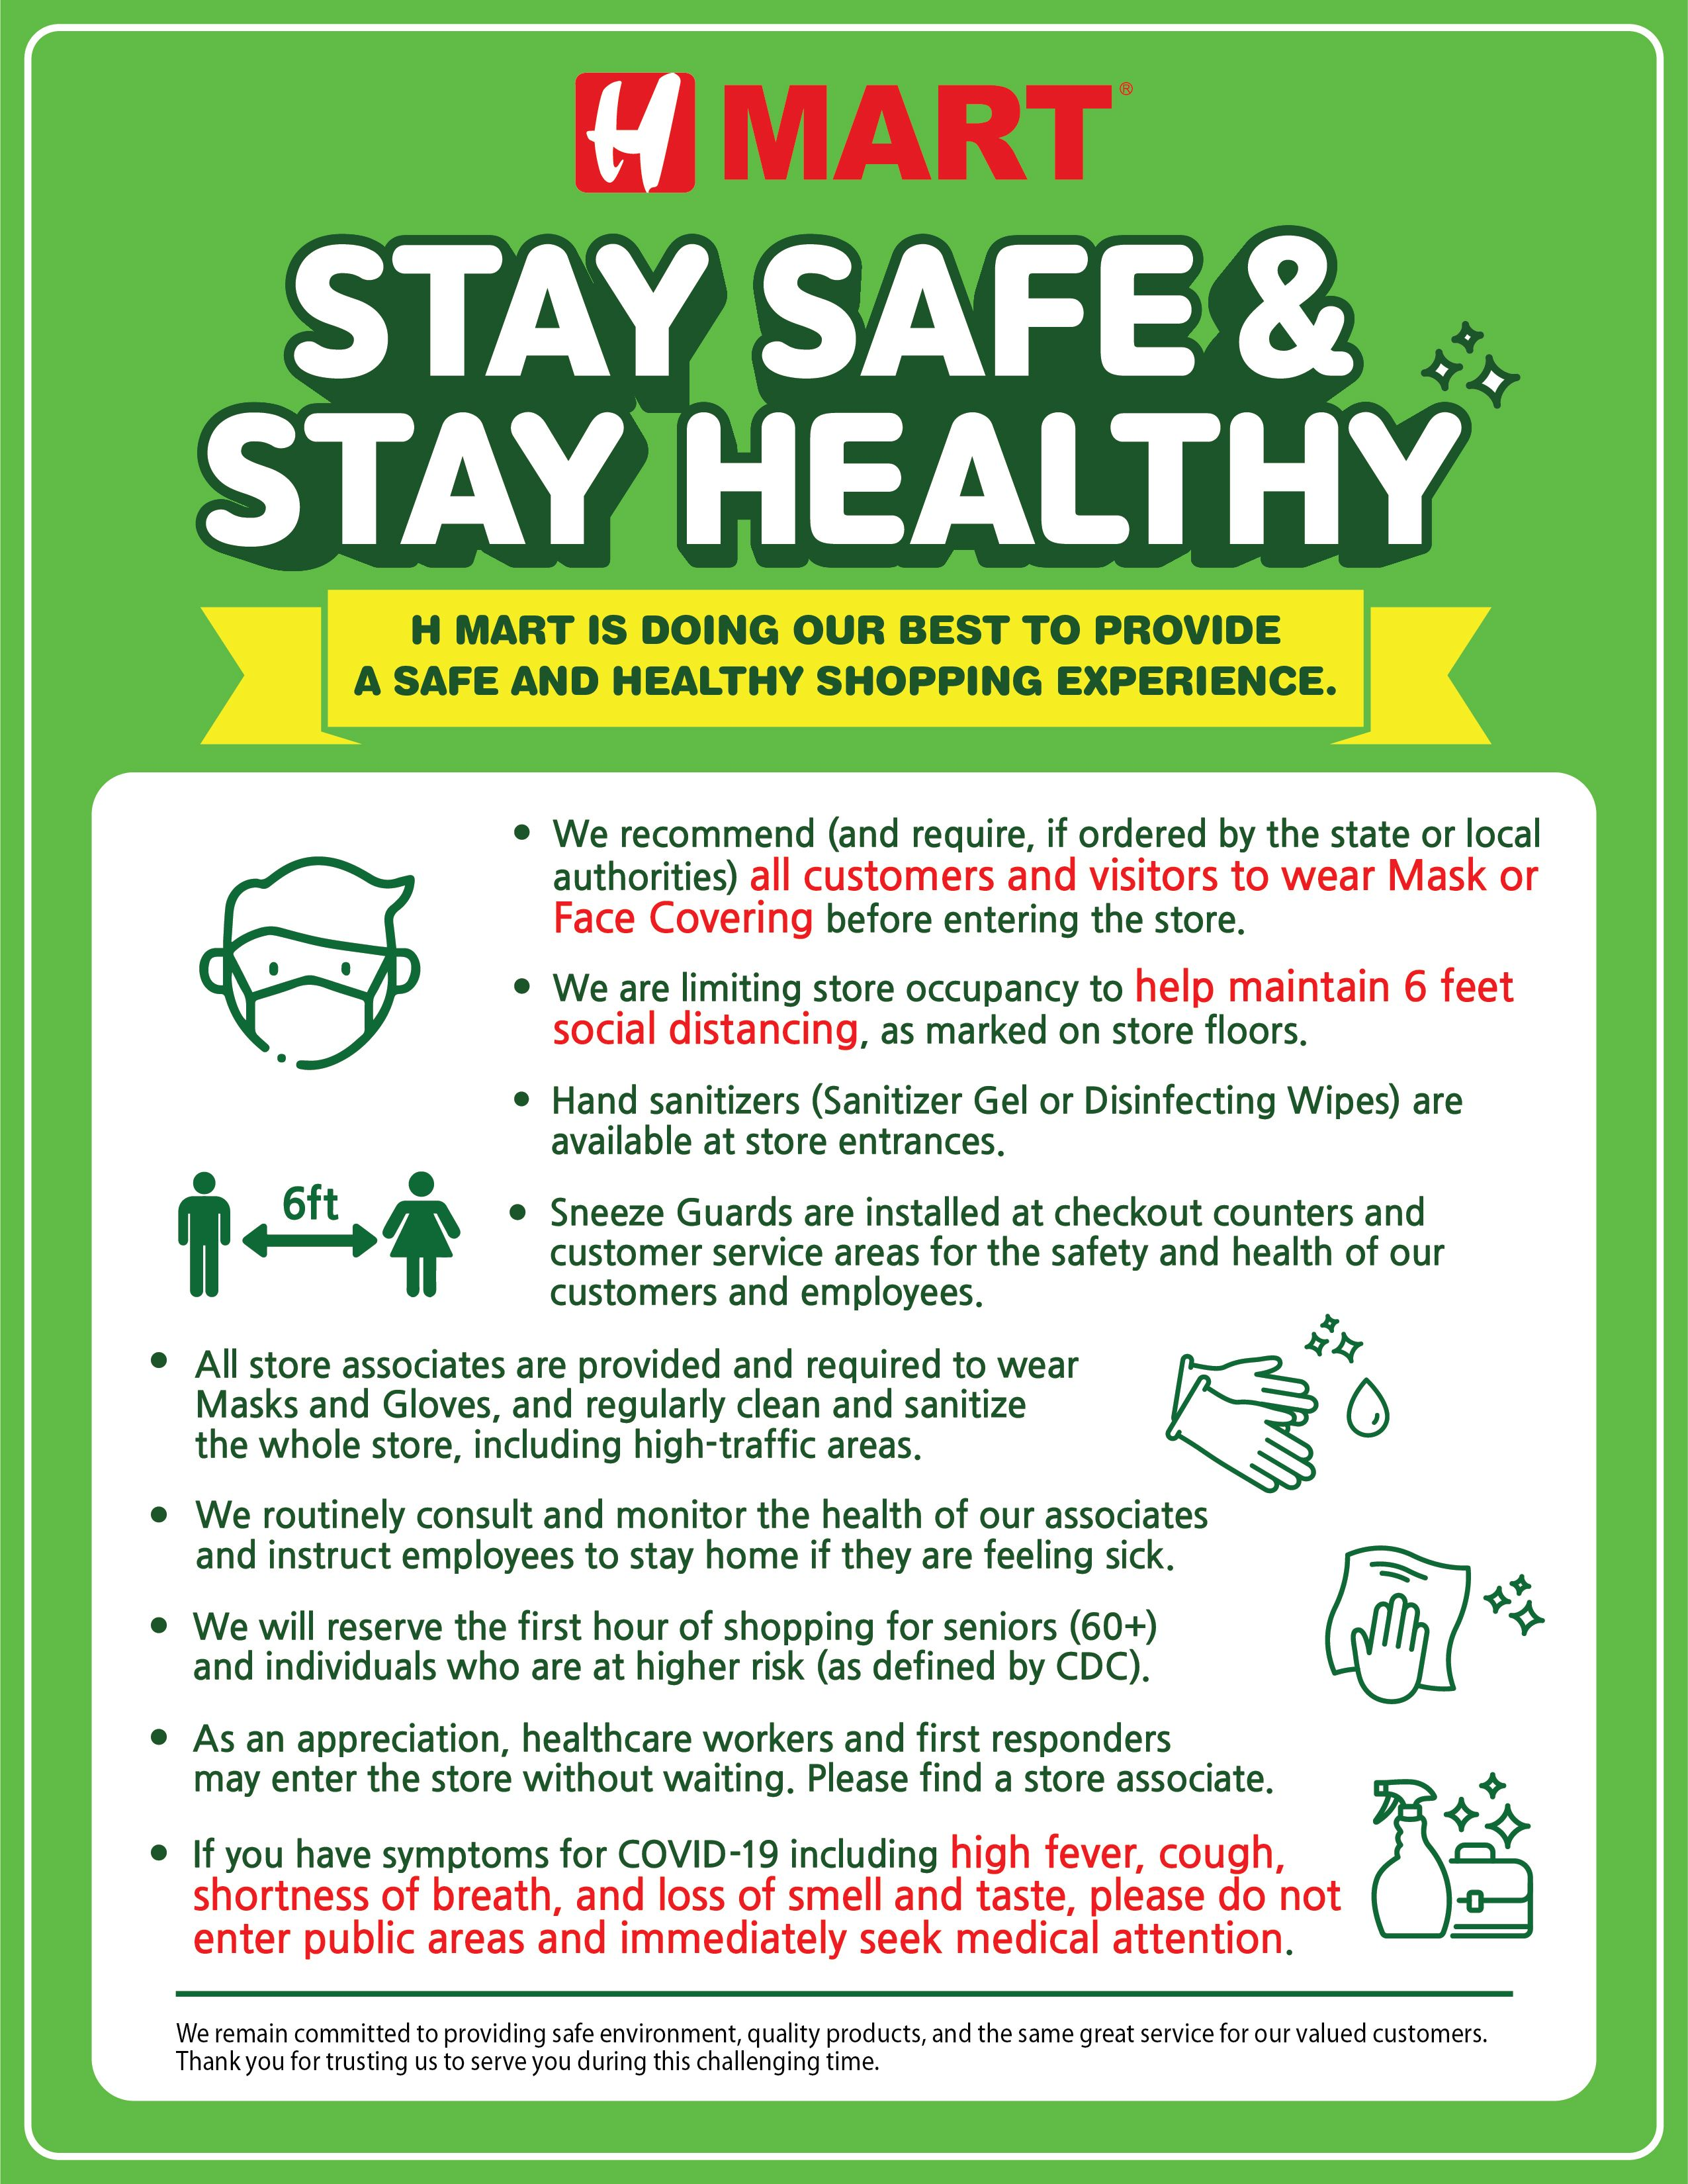 staysafe%26stayhealthy_all regions_en